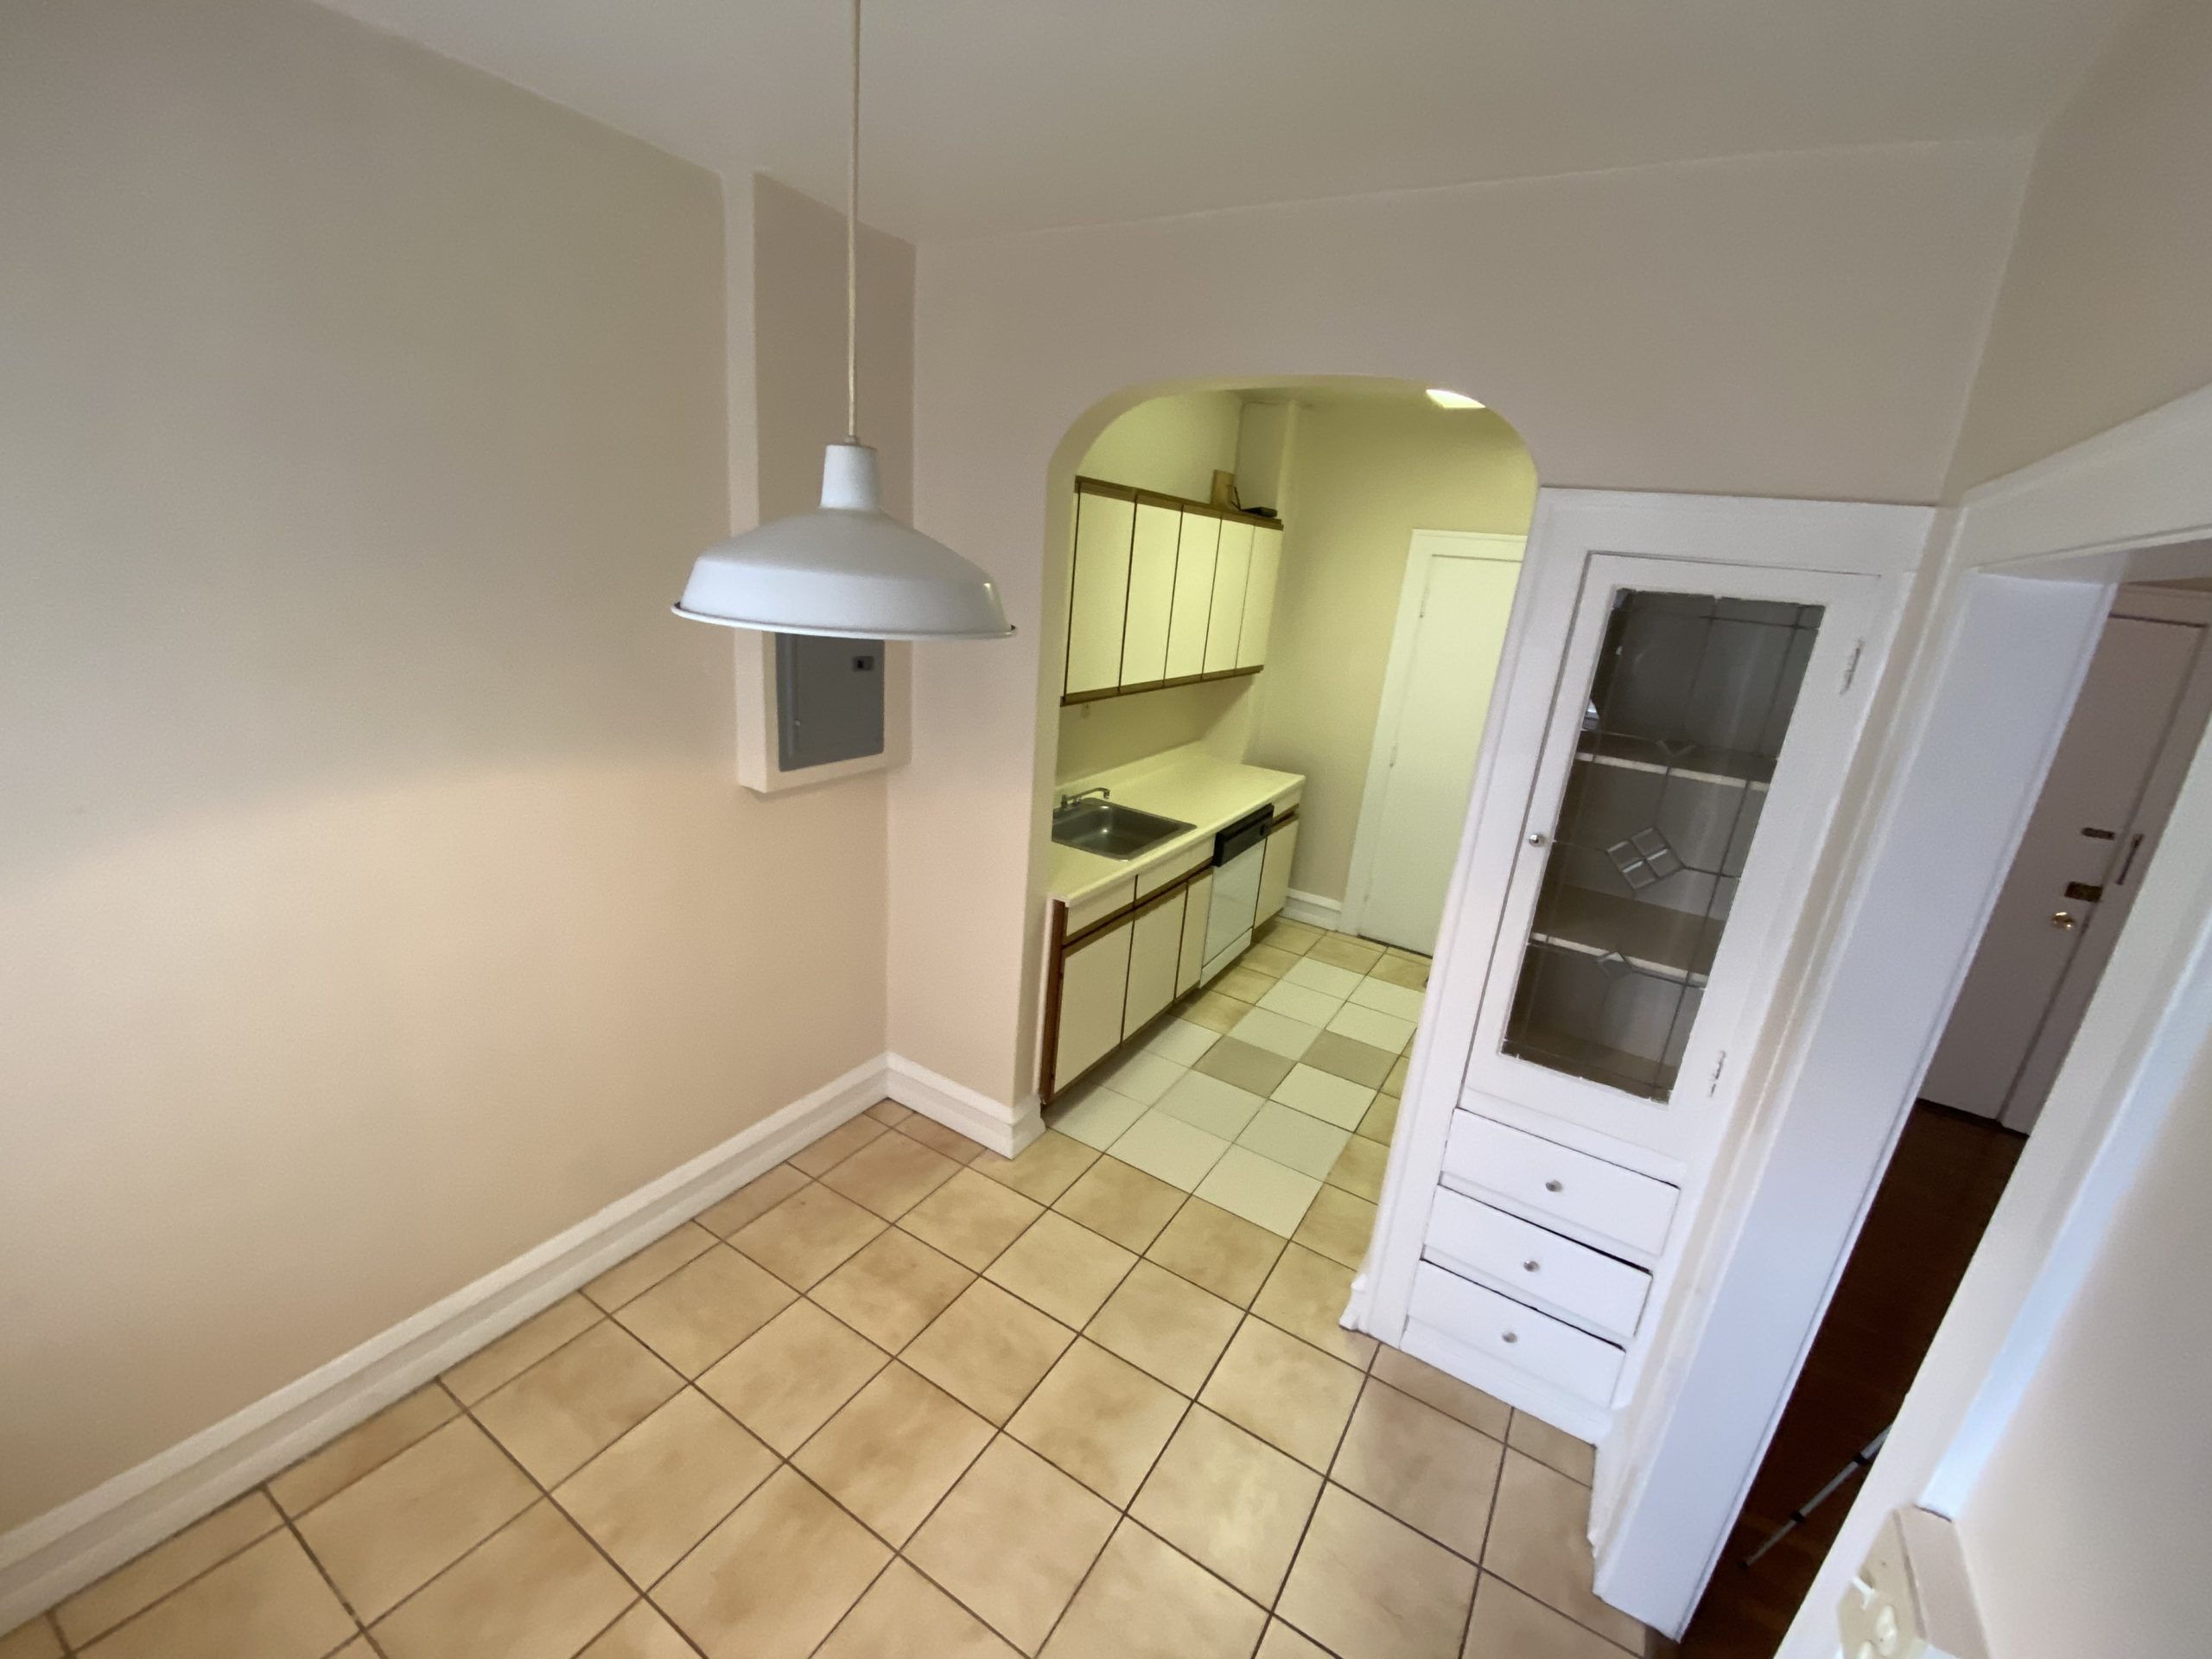 Apartment 204, 2374 Euclid Heights Blvd, Cleveland Heights ...